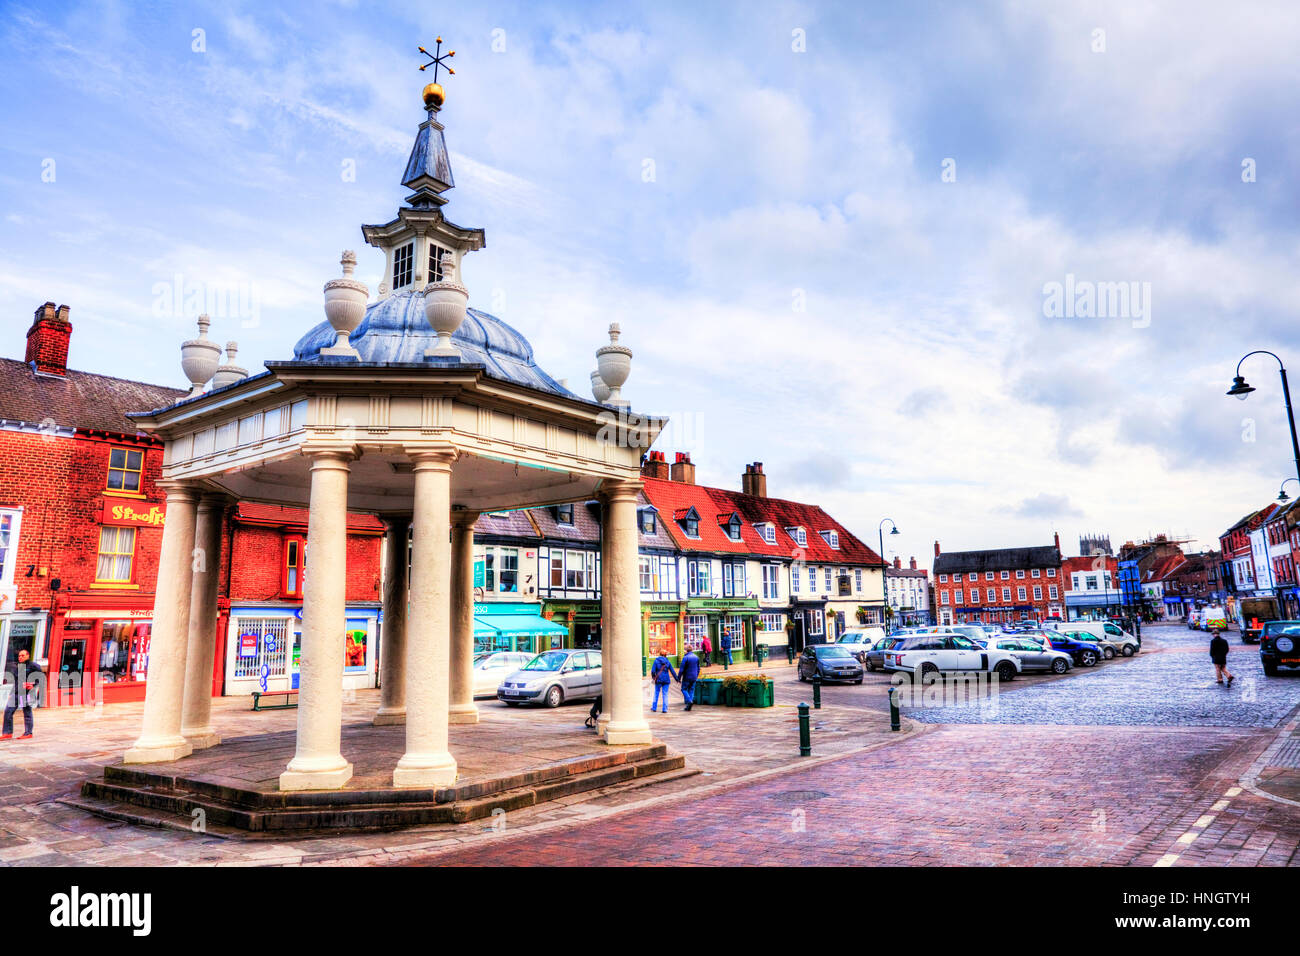 Beverley town centre east riding Yorkshire UK England Beverley bandstand market cross town center - Stock Image